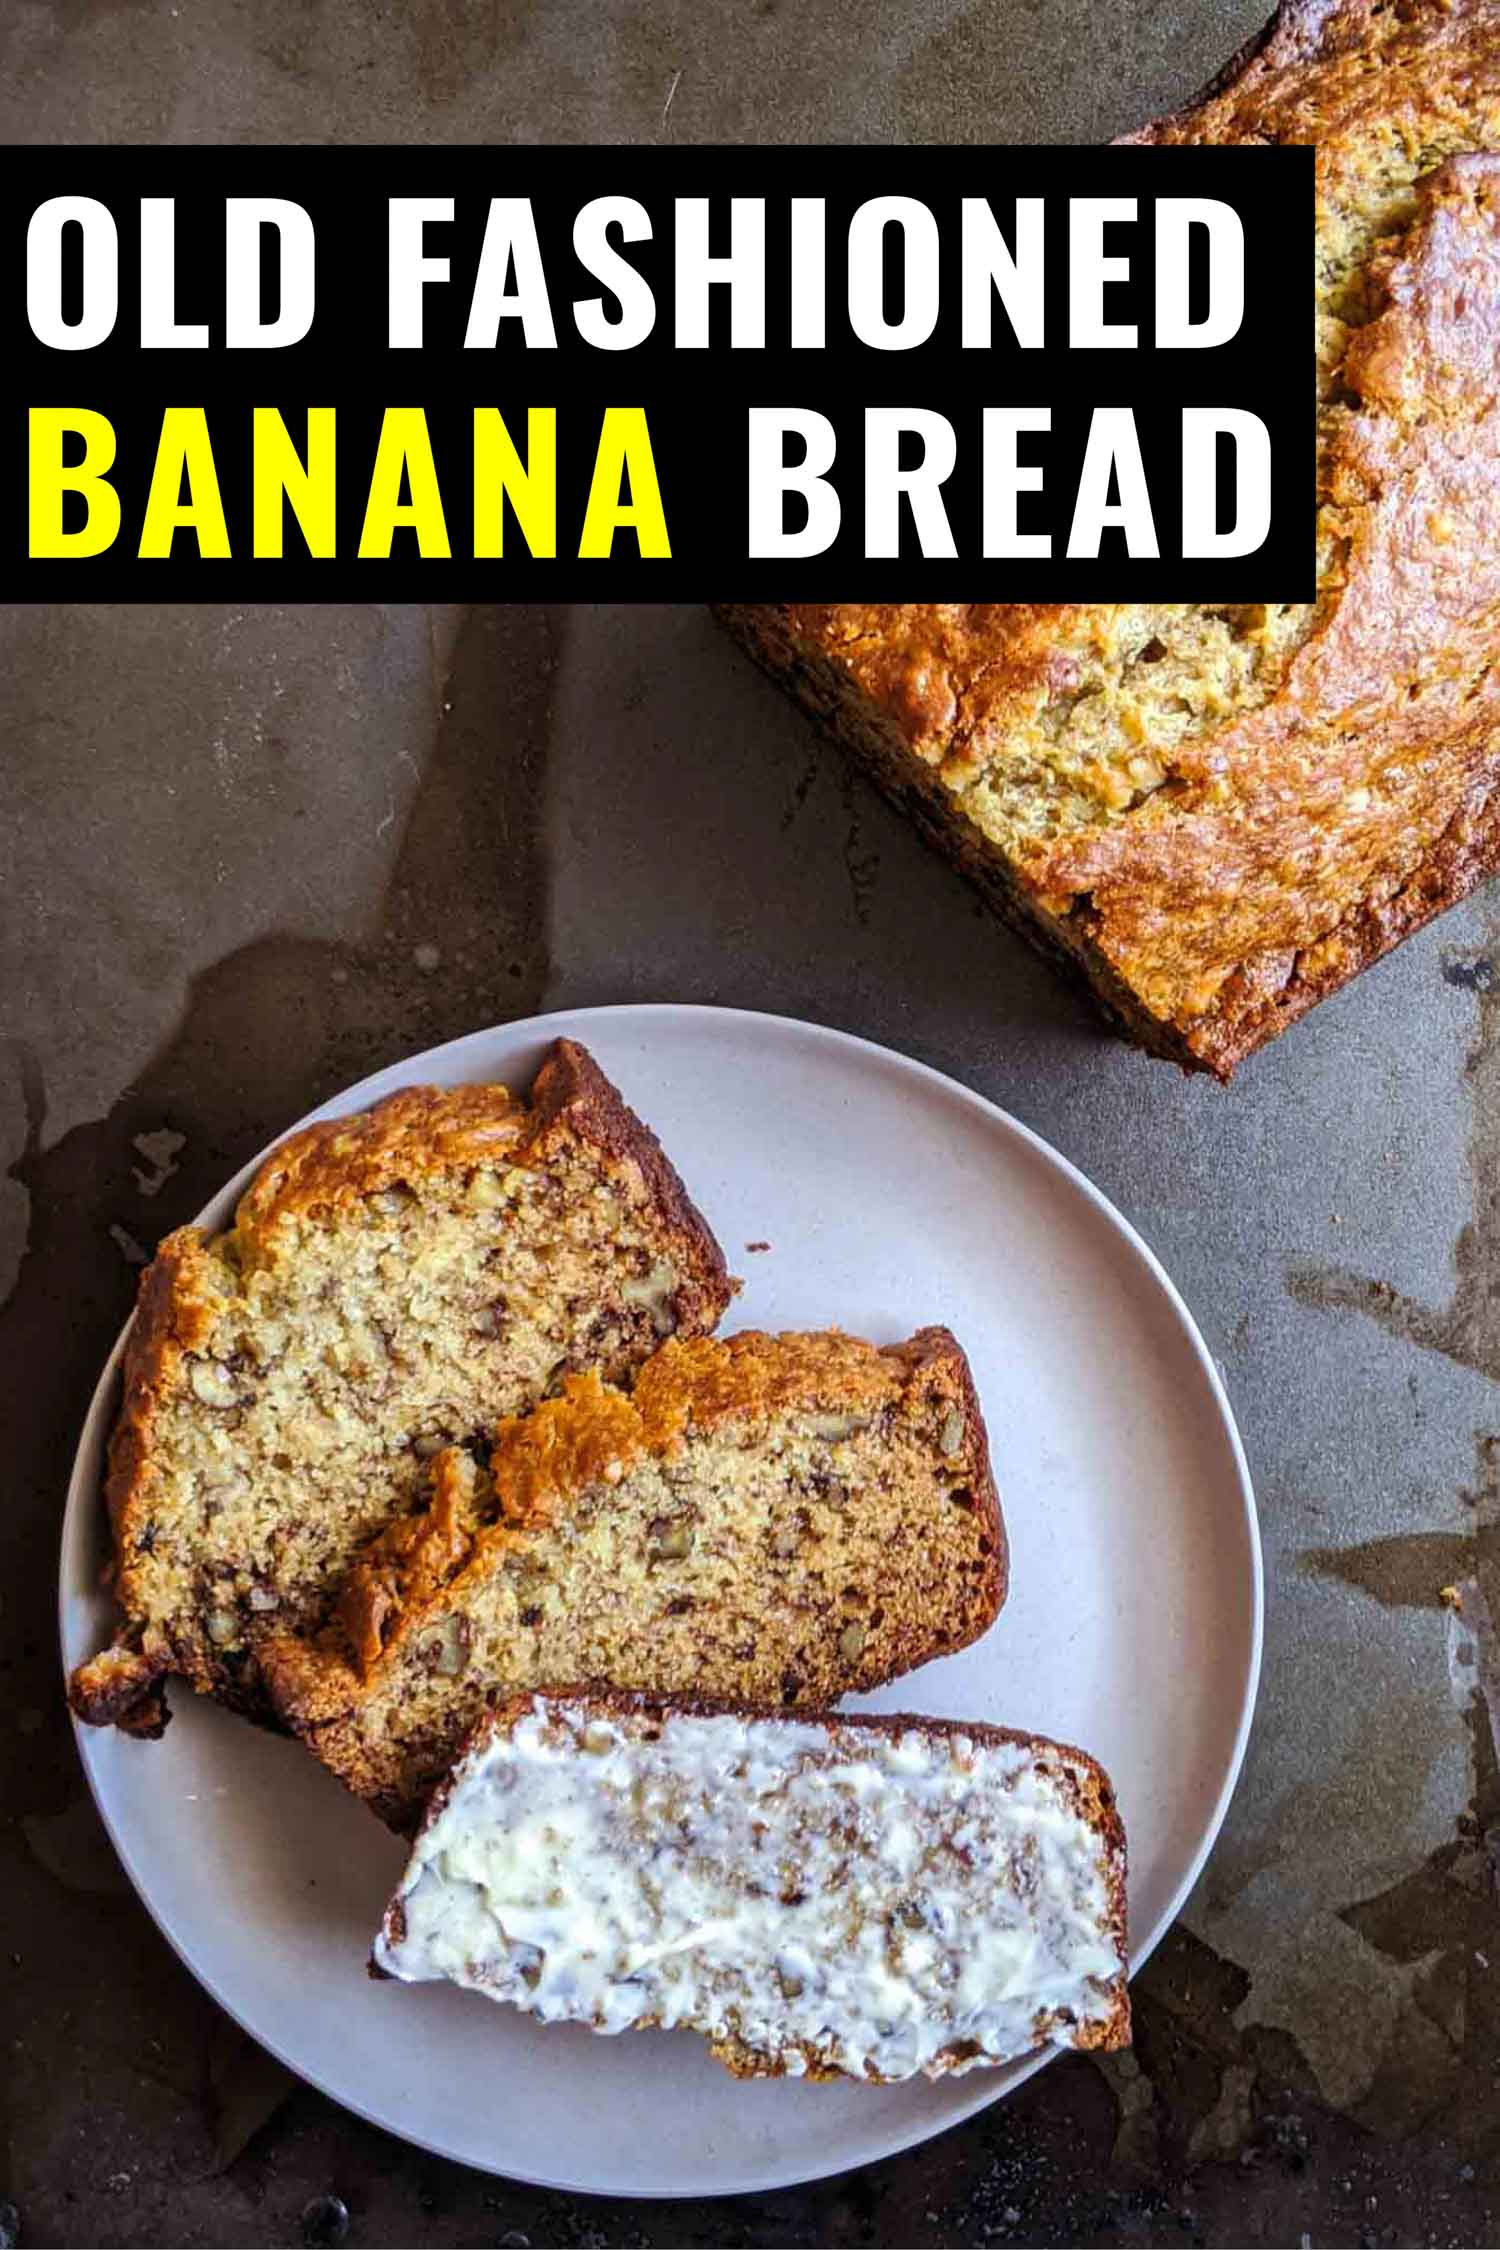 Old Fashioned Banana Bread Like Your Grandmother Made